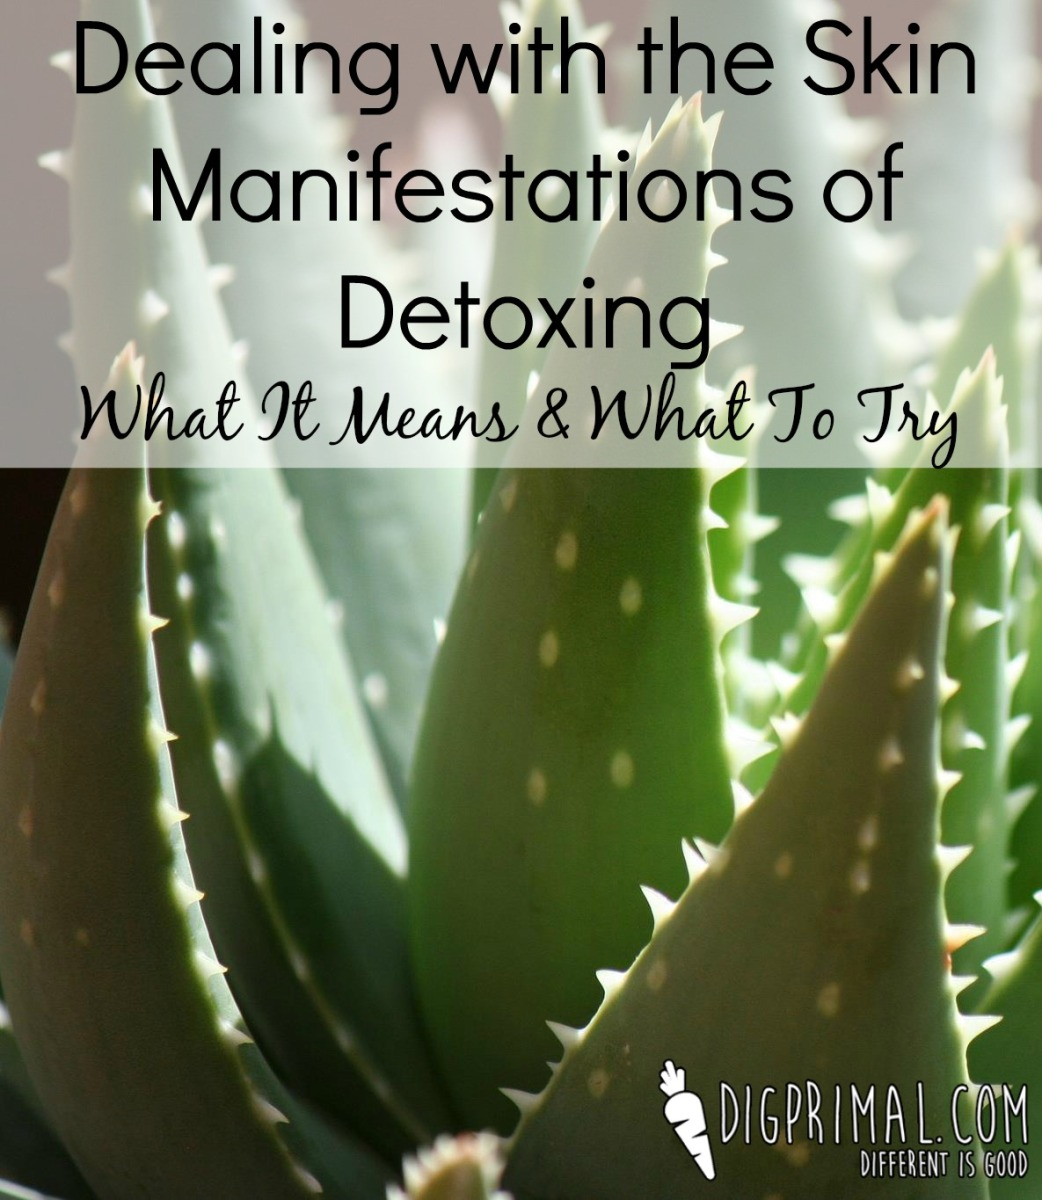 Dealing with the Skin Manifestations of Detoxing